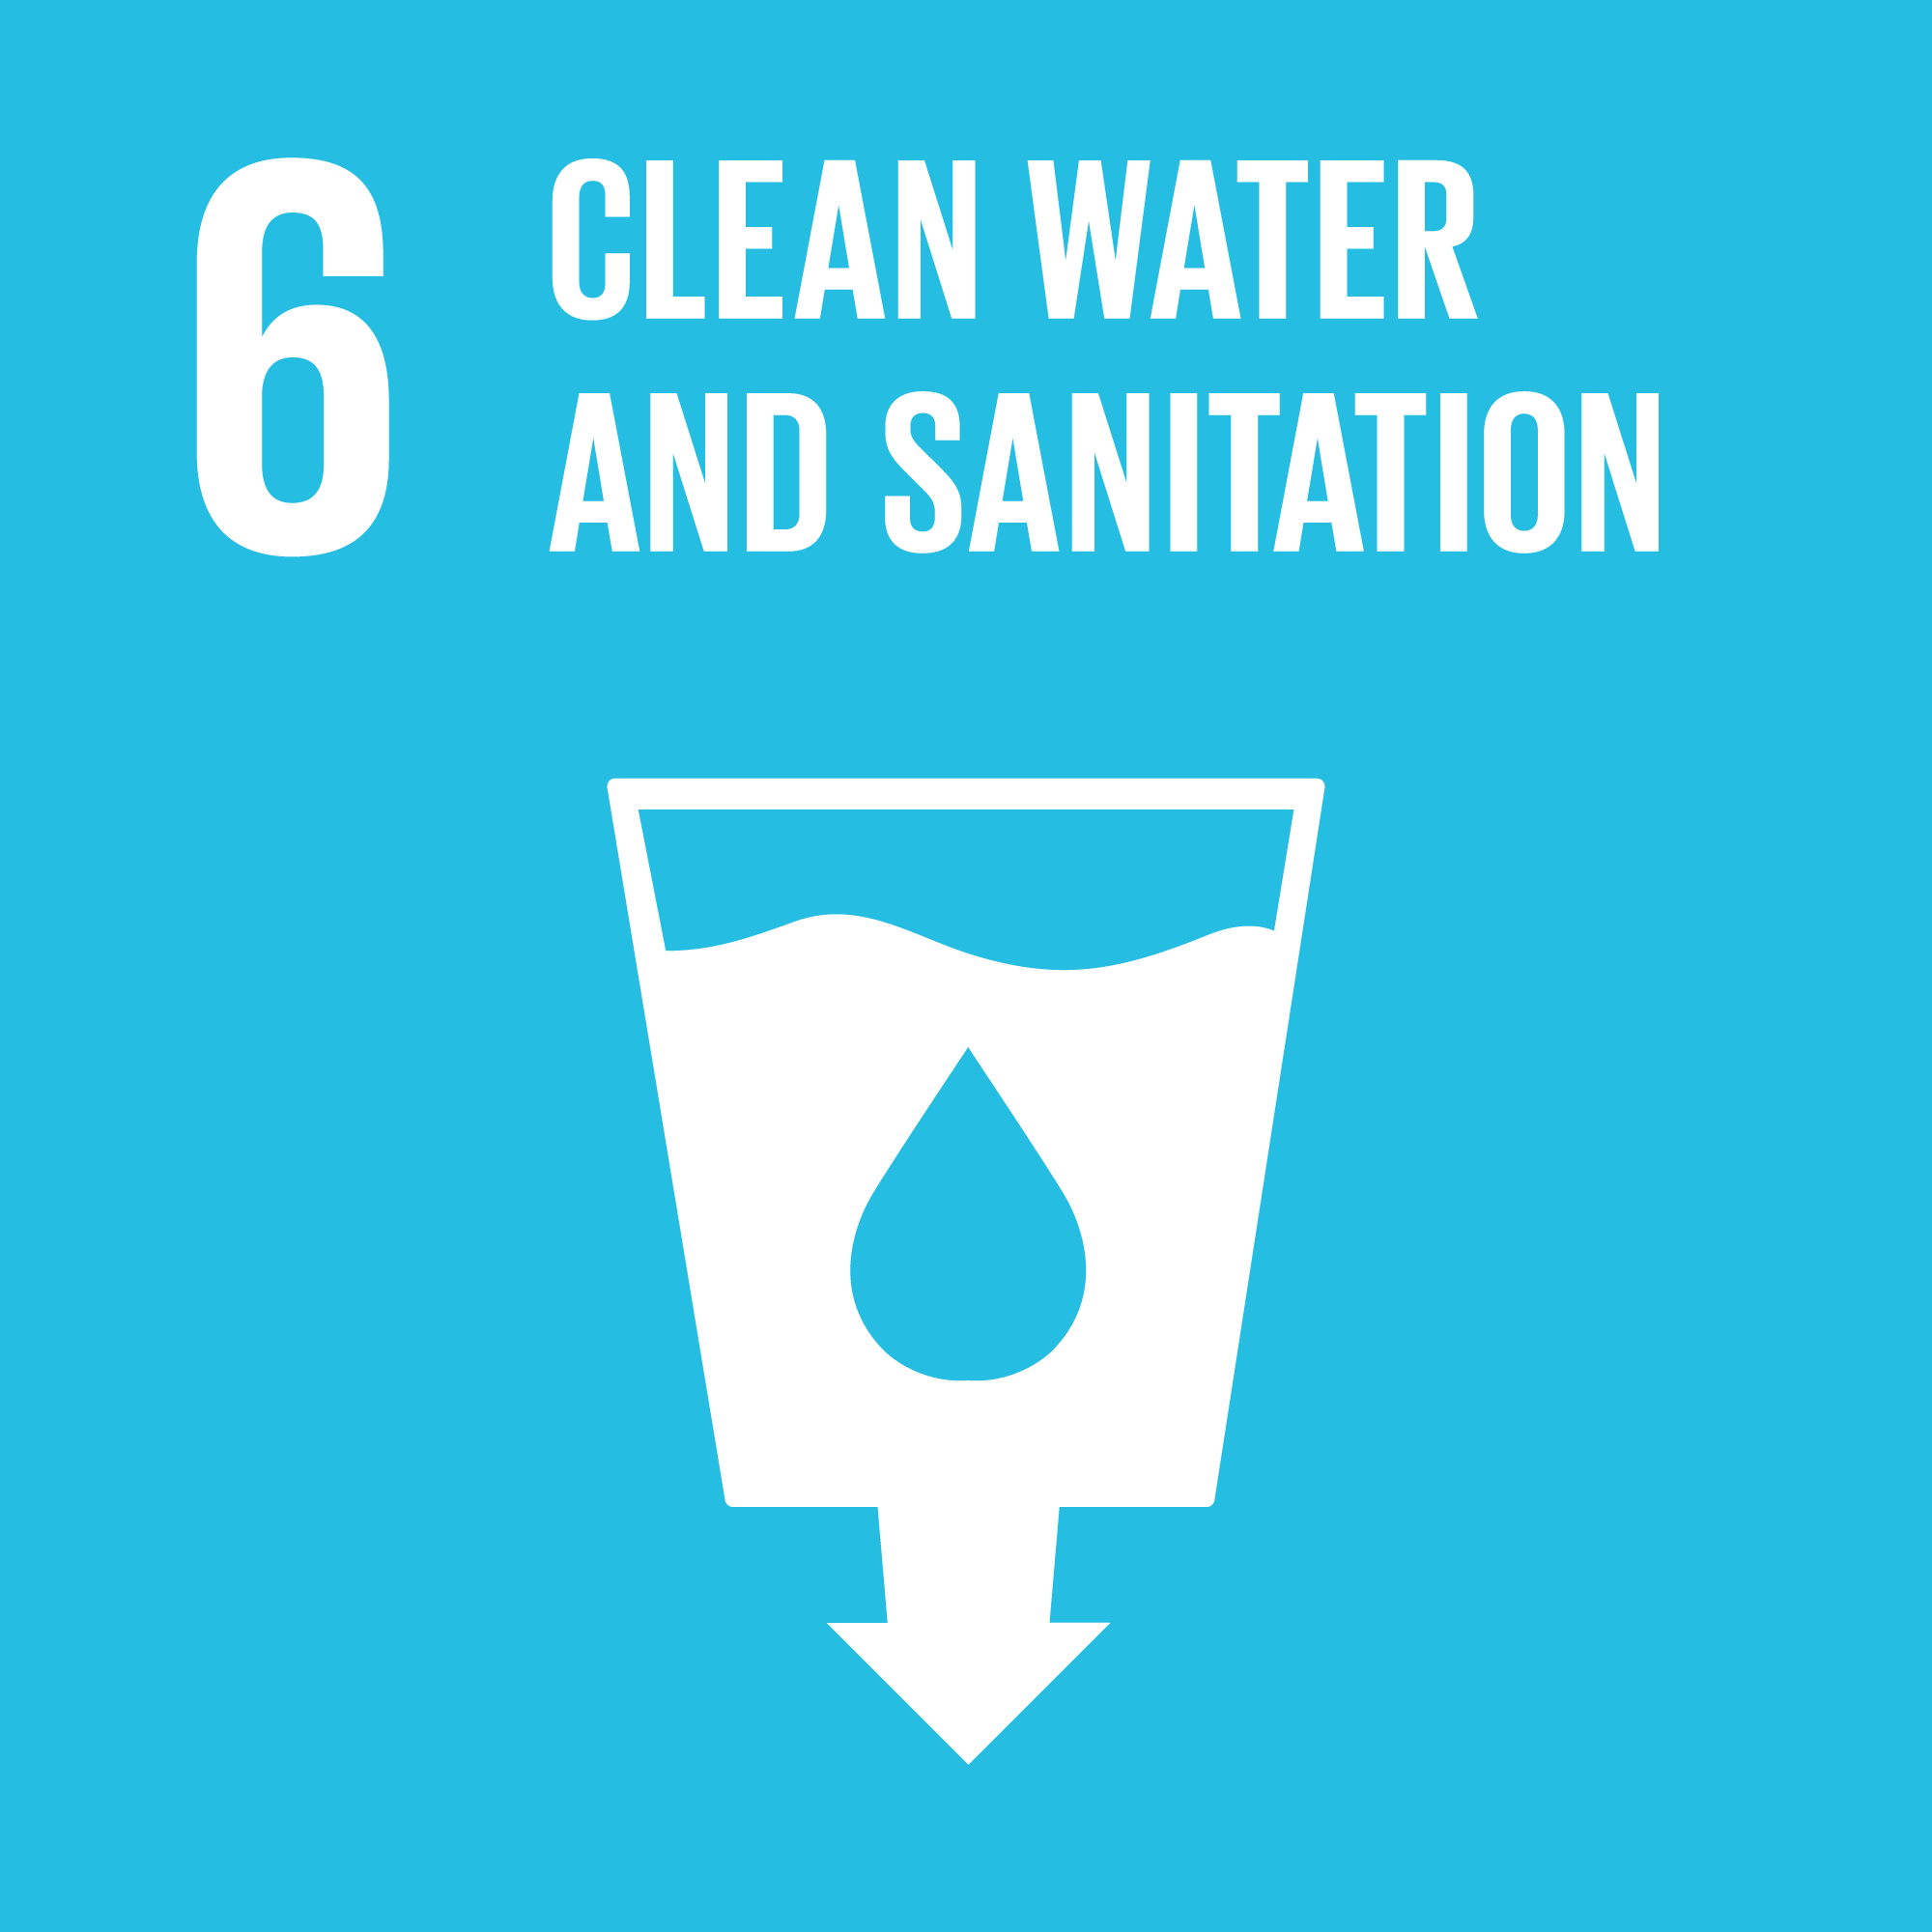 Sustainable Development Goal 6: Clean Water